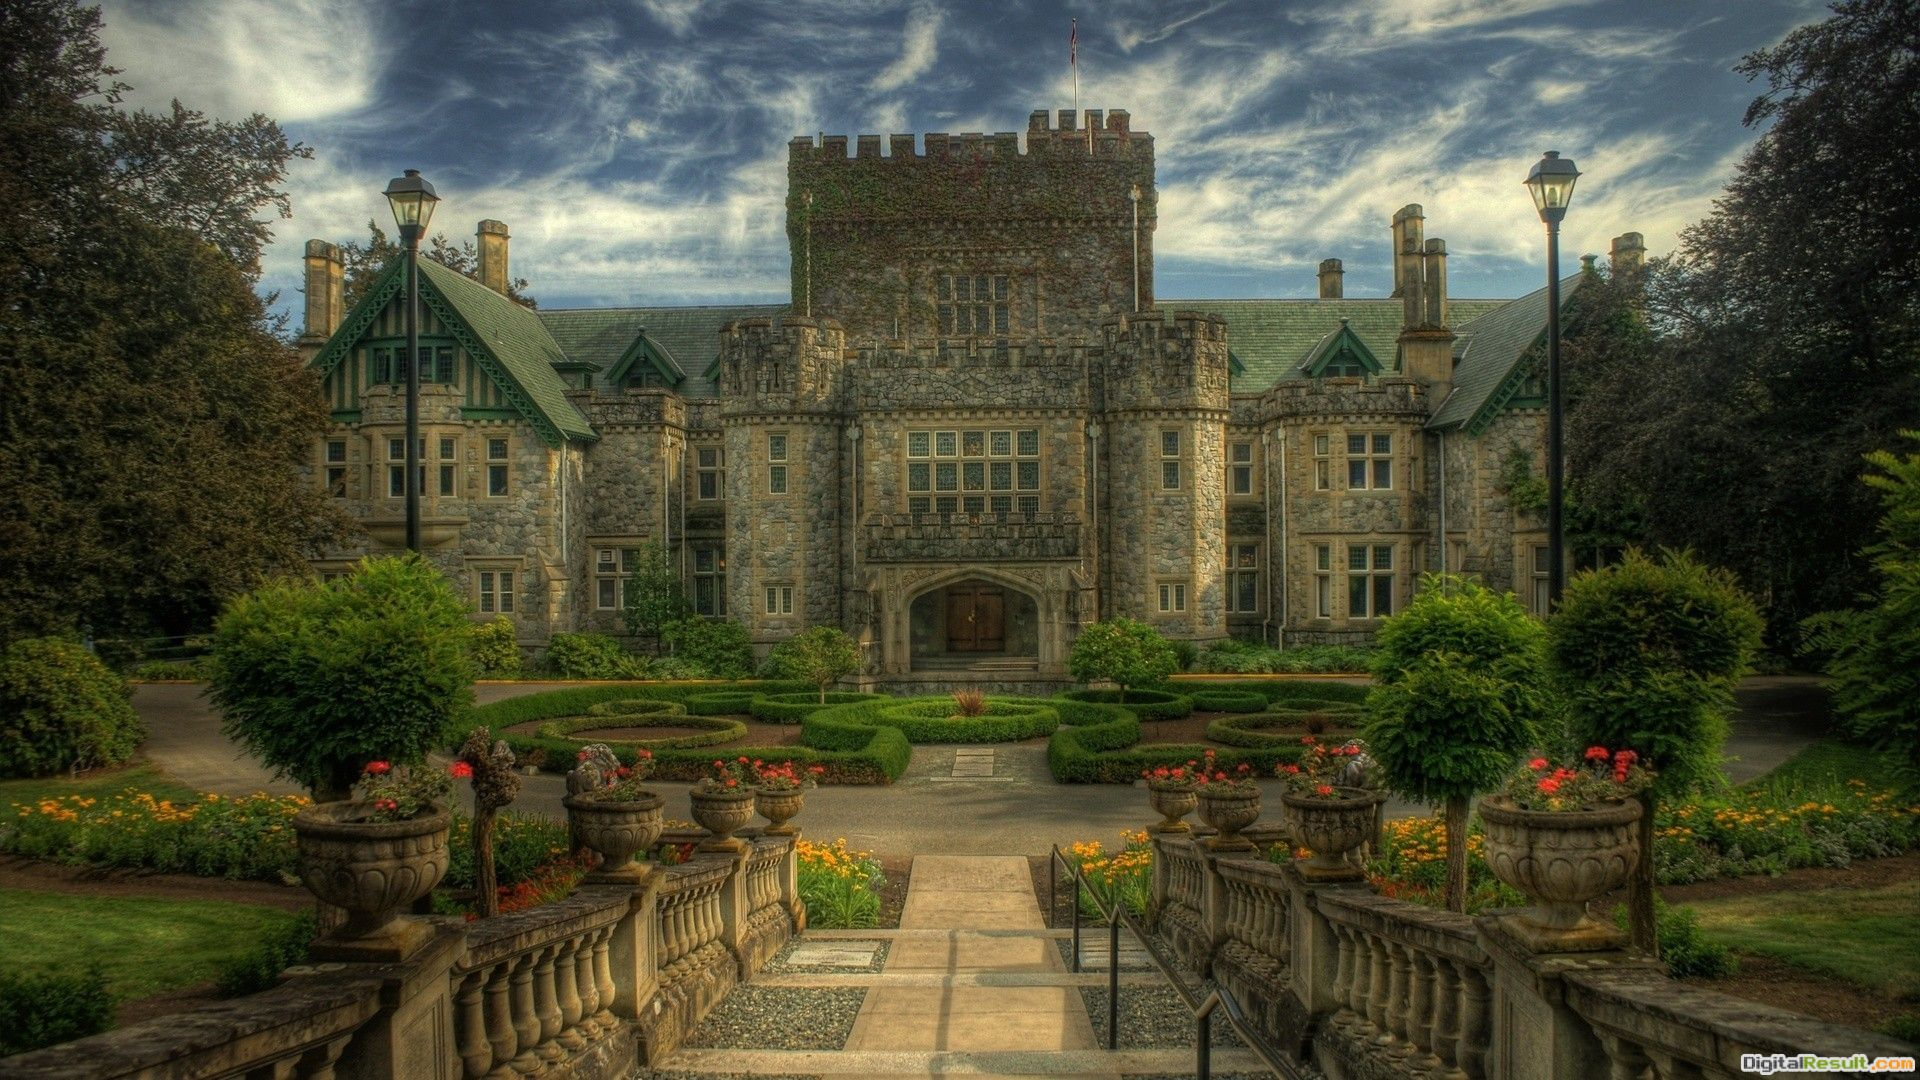 The ancient castle in Canada wallpapers and imageswallpapers 810